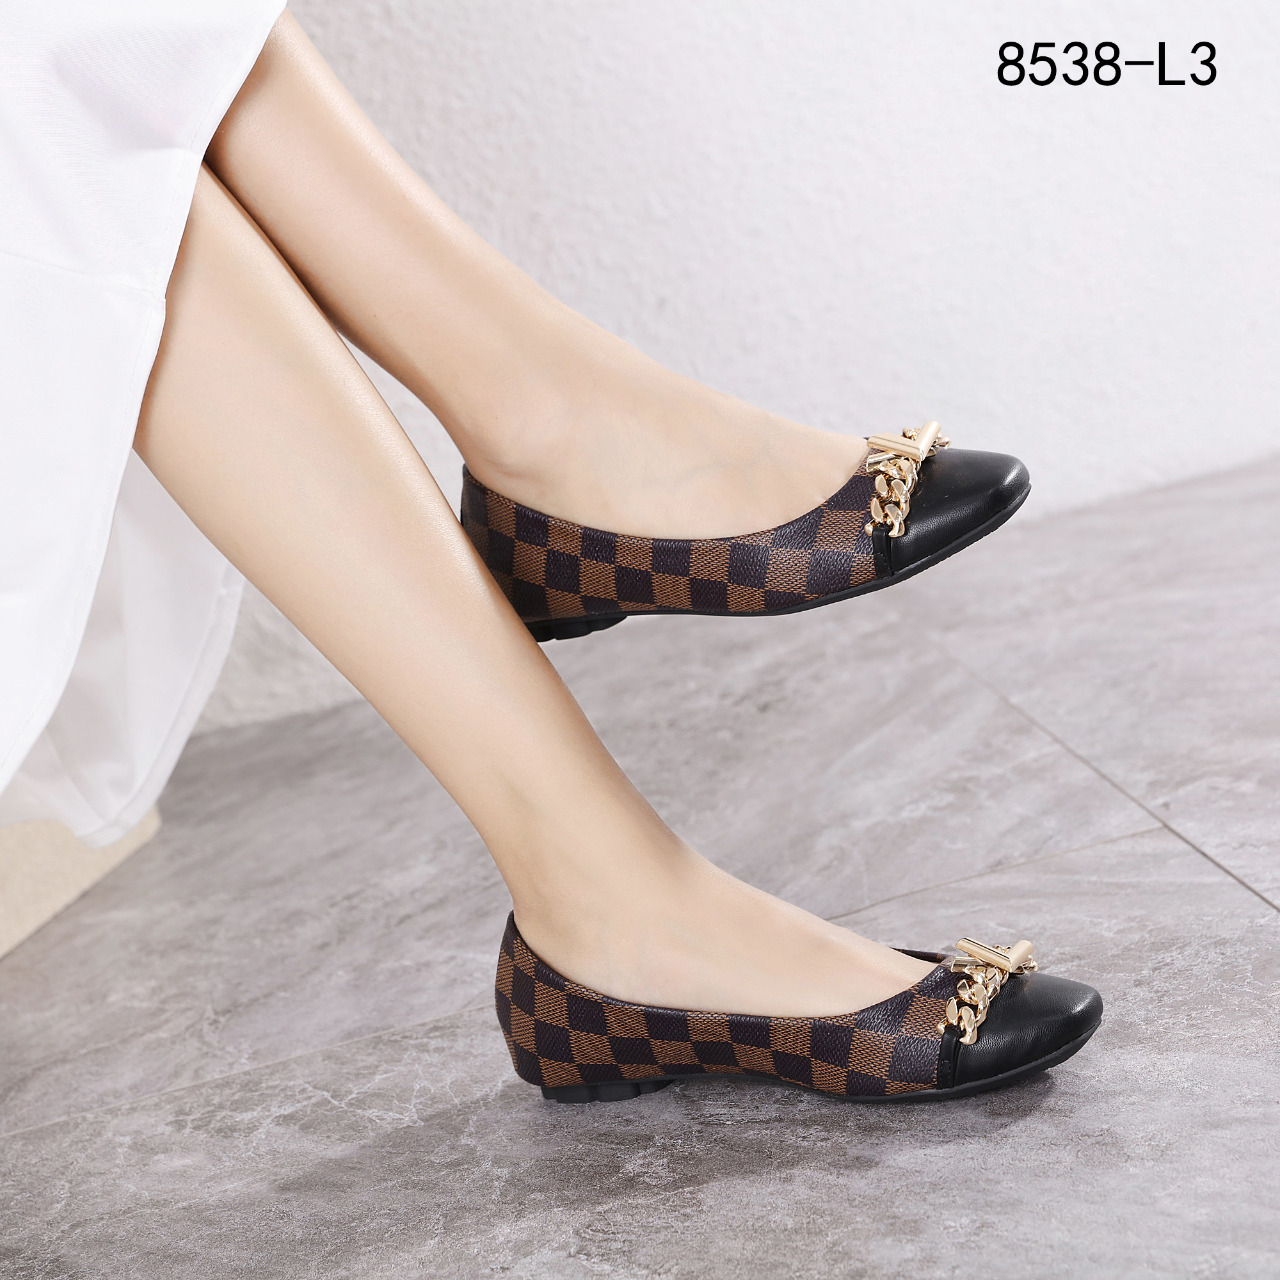 New Arrivall !  New Item !   * LV Logo Gold Hardware Flats Shoes #8538-L3*